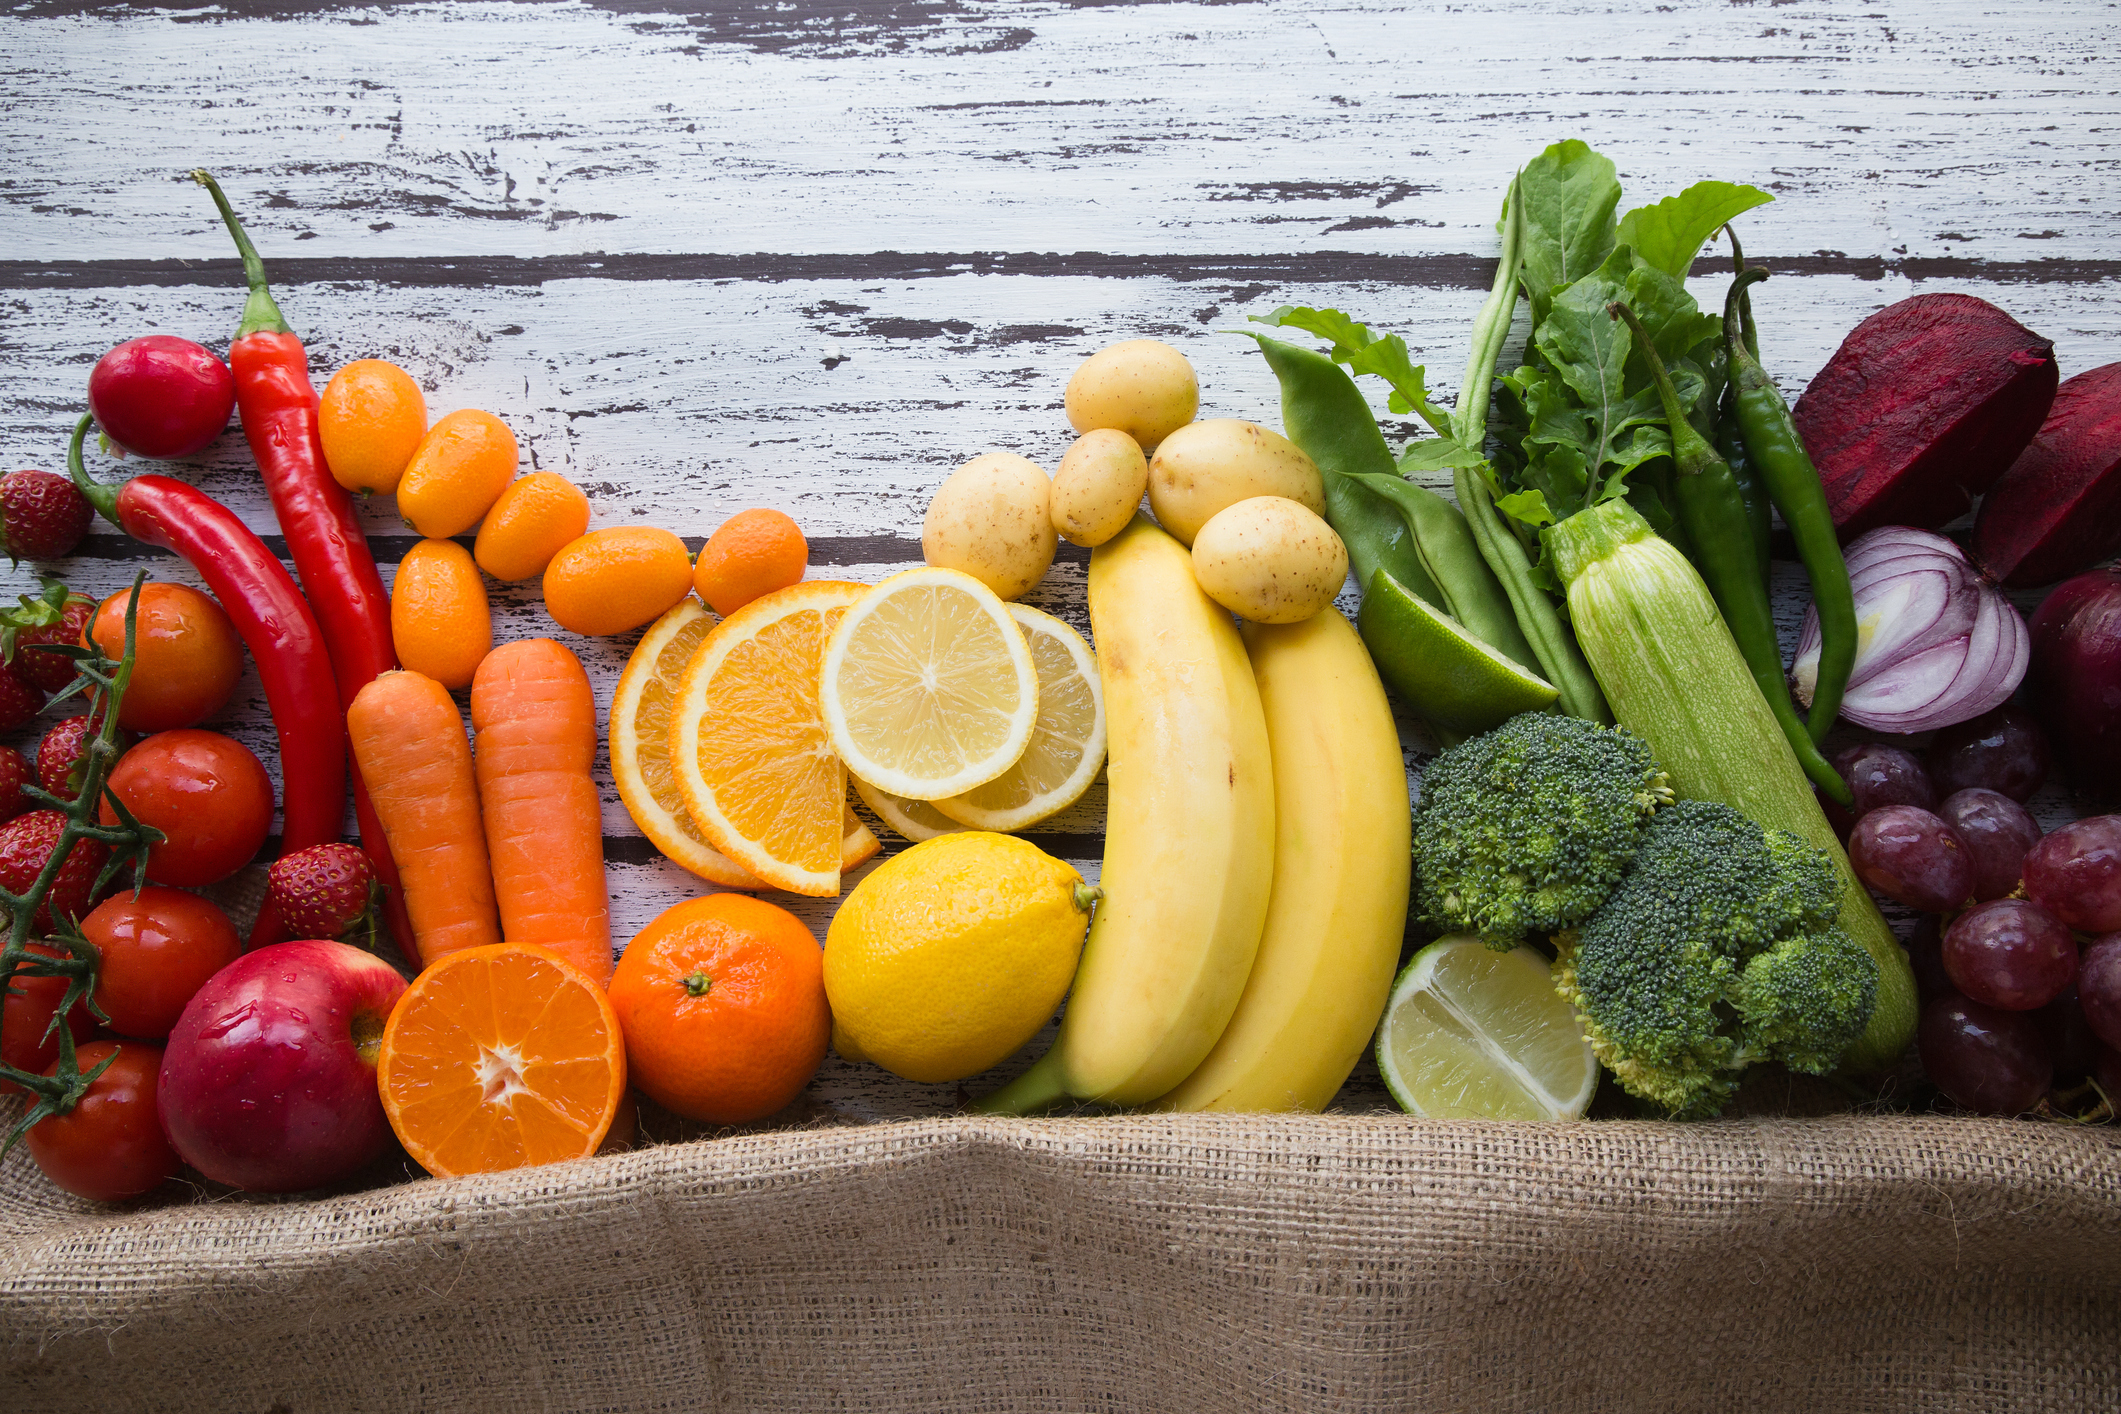 ADHD Nutrition: Fruits, Vegetables, and ADD Risk for Children